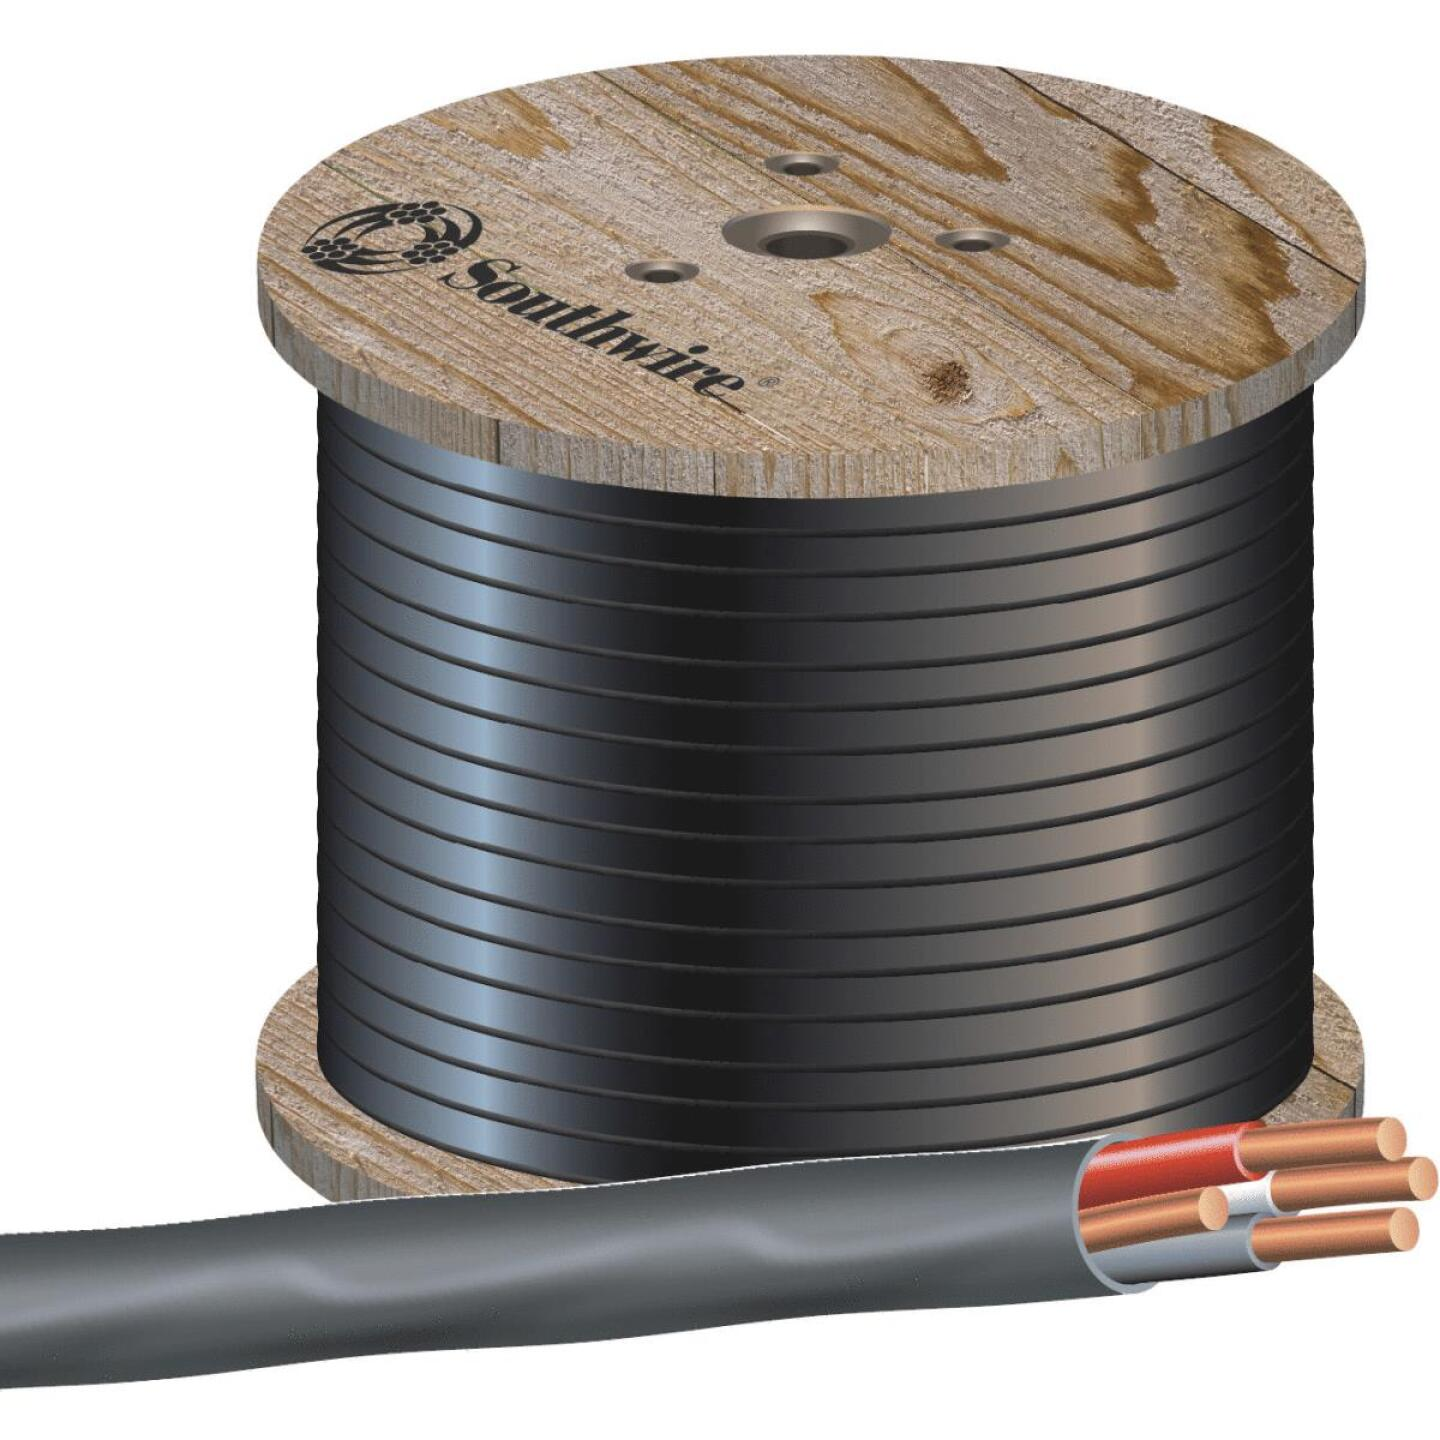 Romex 500 Ft. 8-3 Solid Black NMW/G Wire Image 1